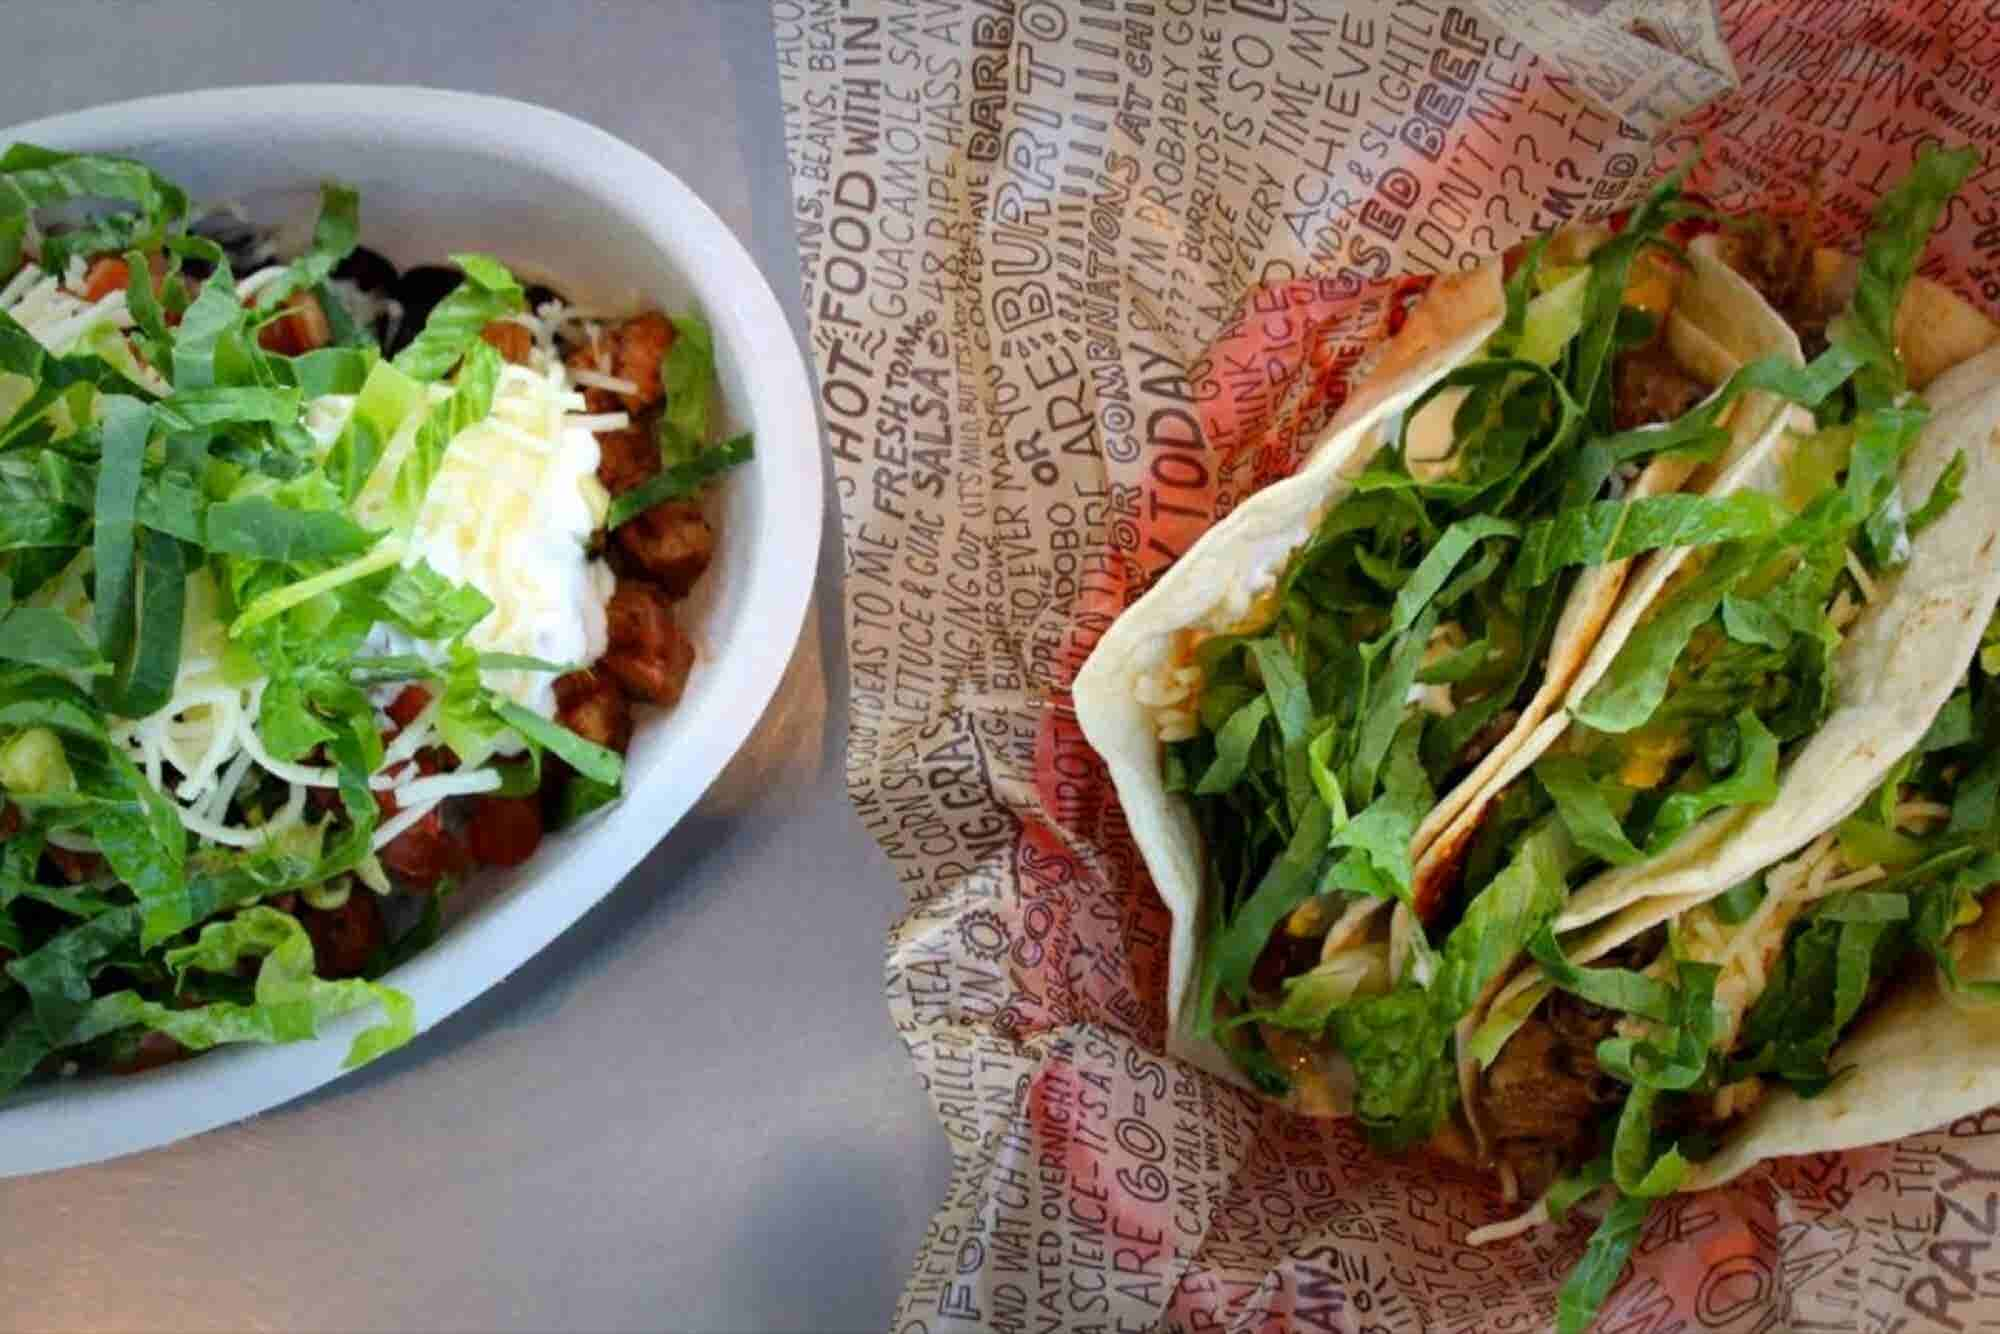 After Numerous Health Incidents, Chipotle Has a Big Perception Problem